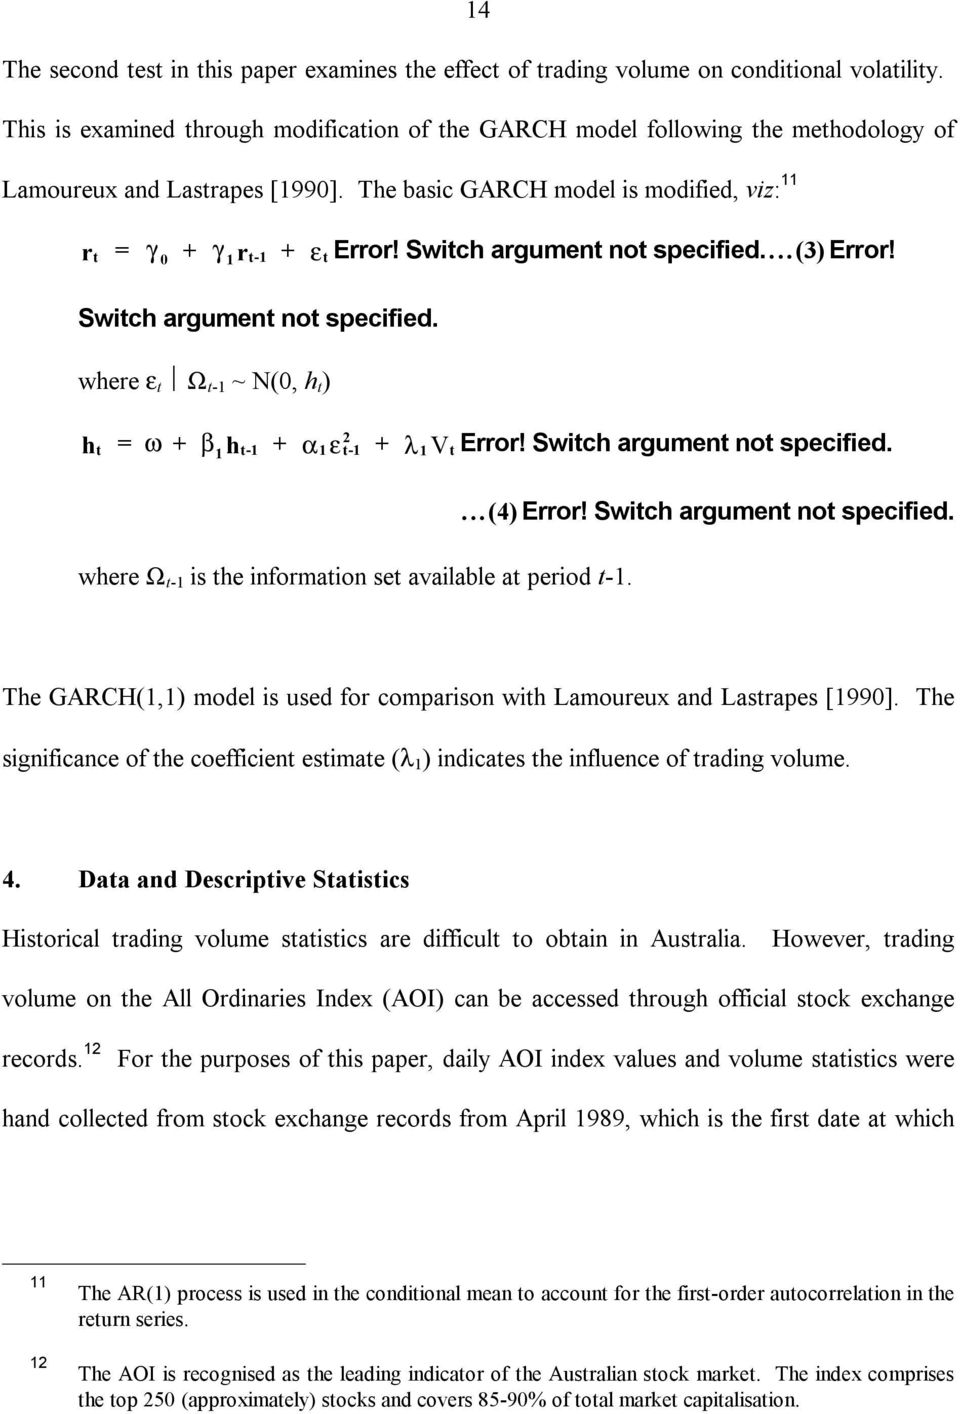 Switch argument not specified...(3) Error! Switch argument not specified. where ε t Ω t-1 ~ N(0, h t ) w b a e l V Error! Switch argument not specified. h t = + 1h t-1 + 1 2 t-1 + 1 t where Ω t-1 is the information set available at period t-1.